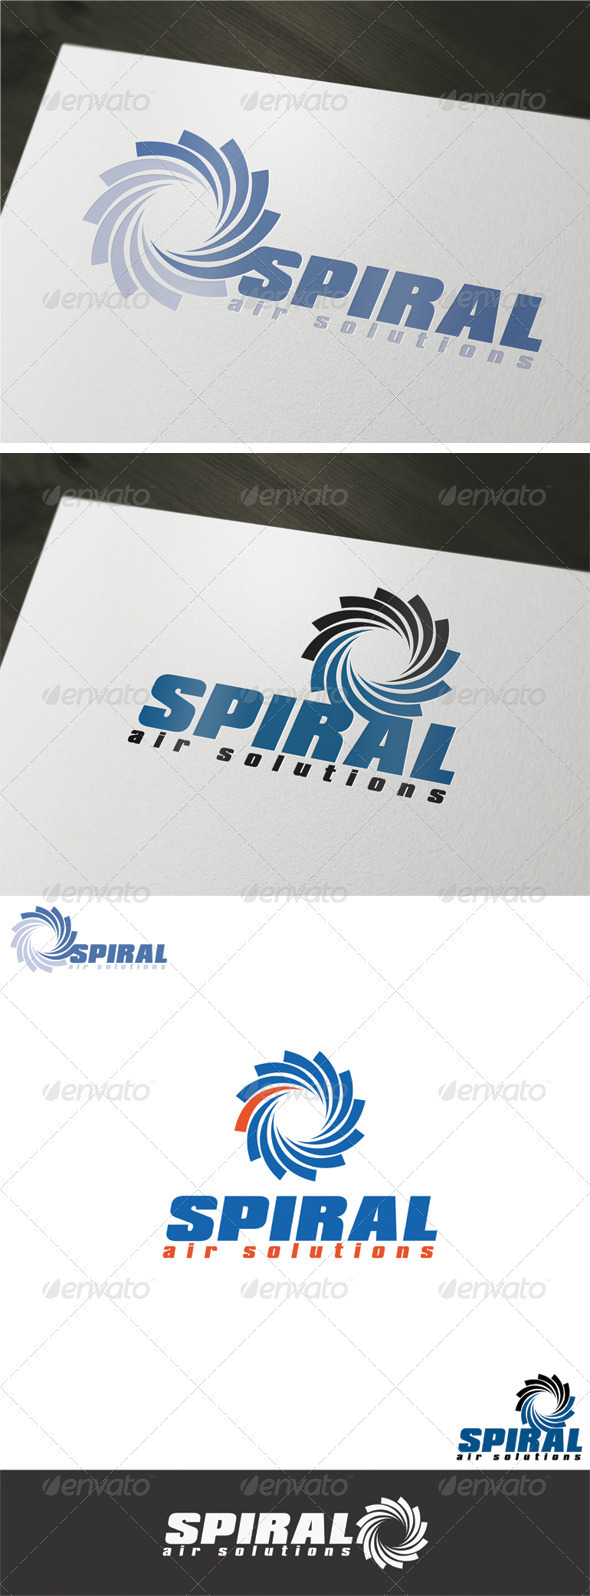 Spiral Air Solutions Logo Template - Vector Abstract